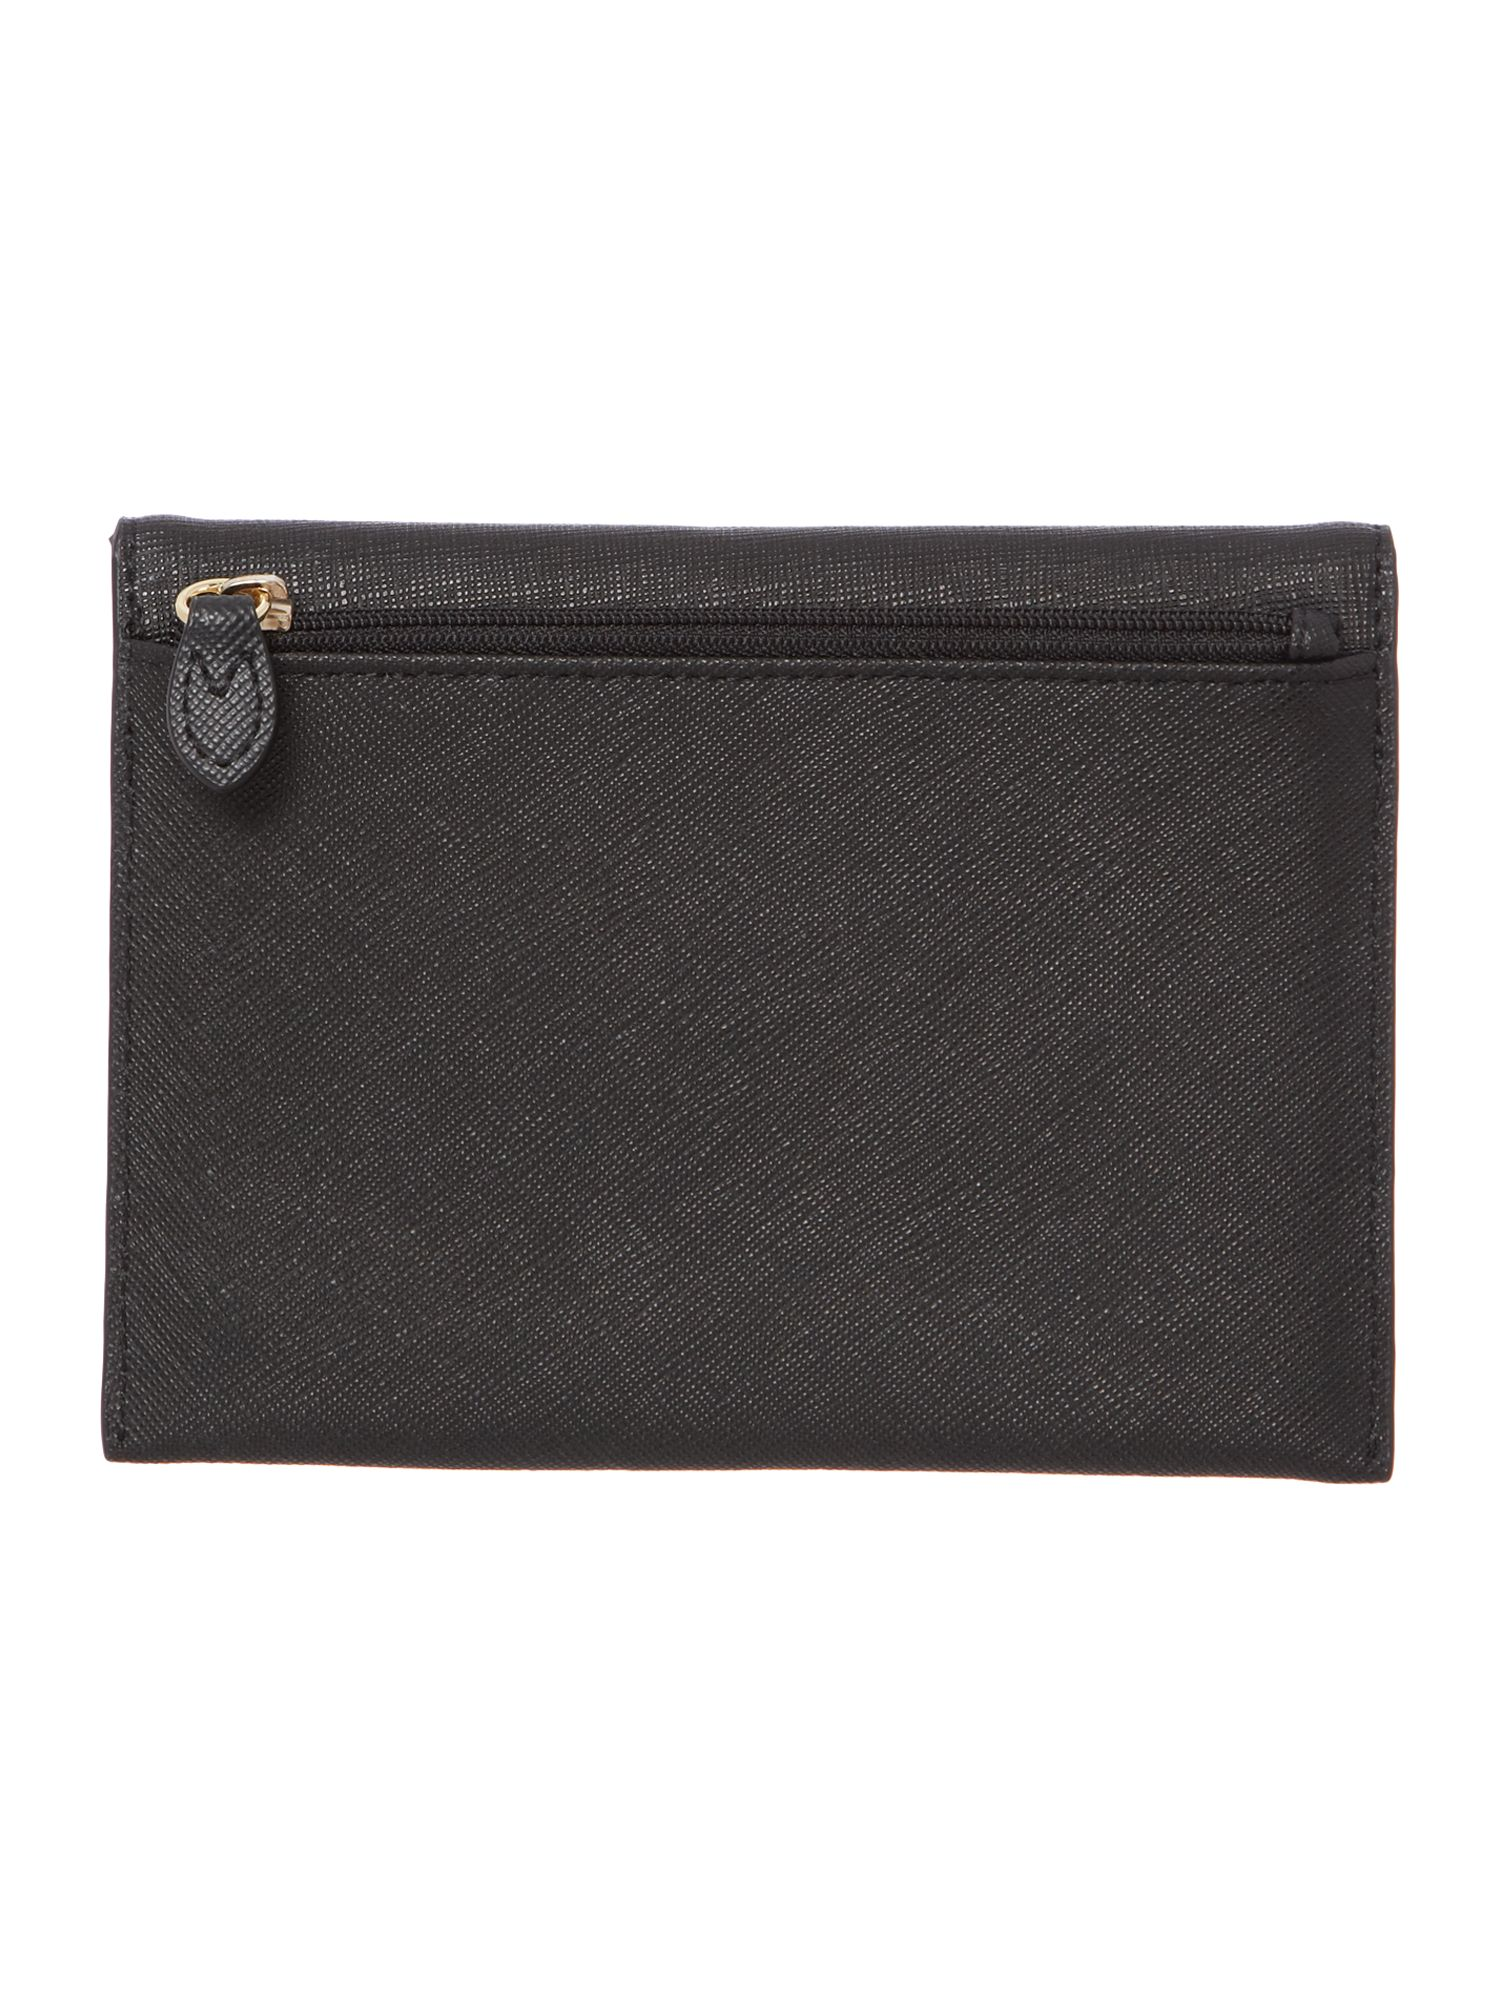 Saffiano black passport case